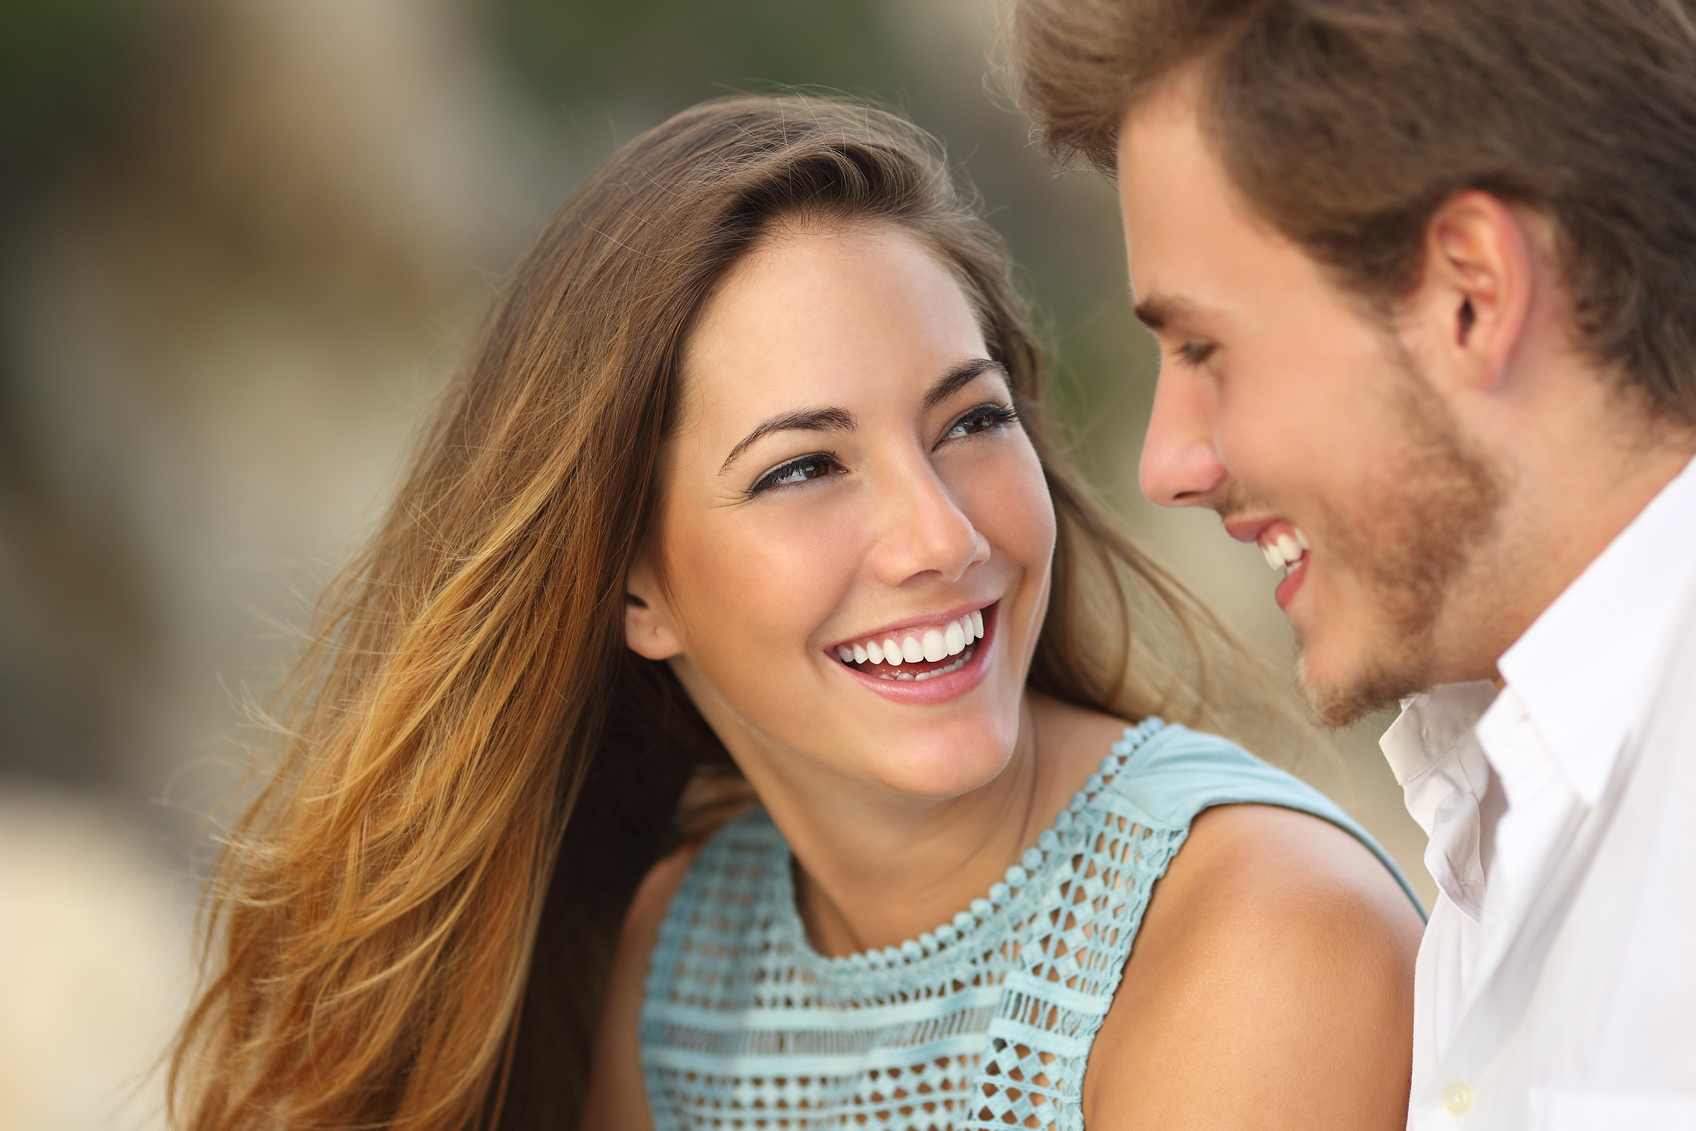 Funny couple laughing with a white perfect smile and looking each other outdoors with unfocused background